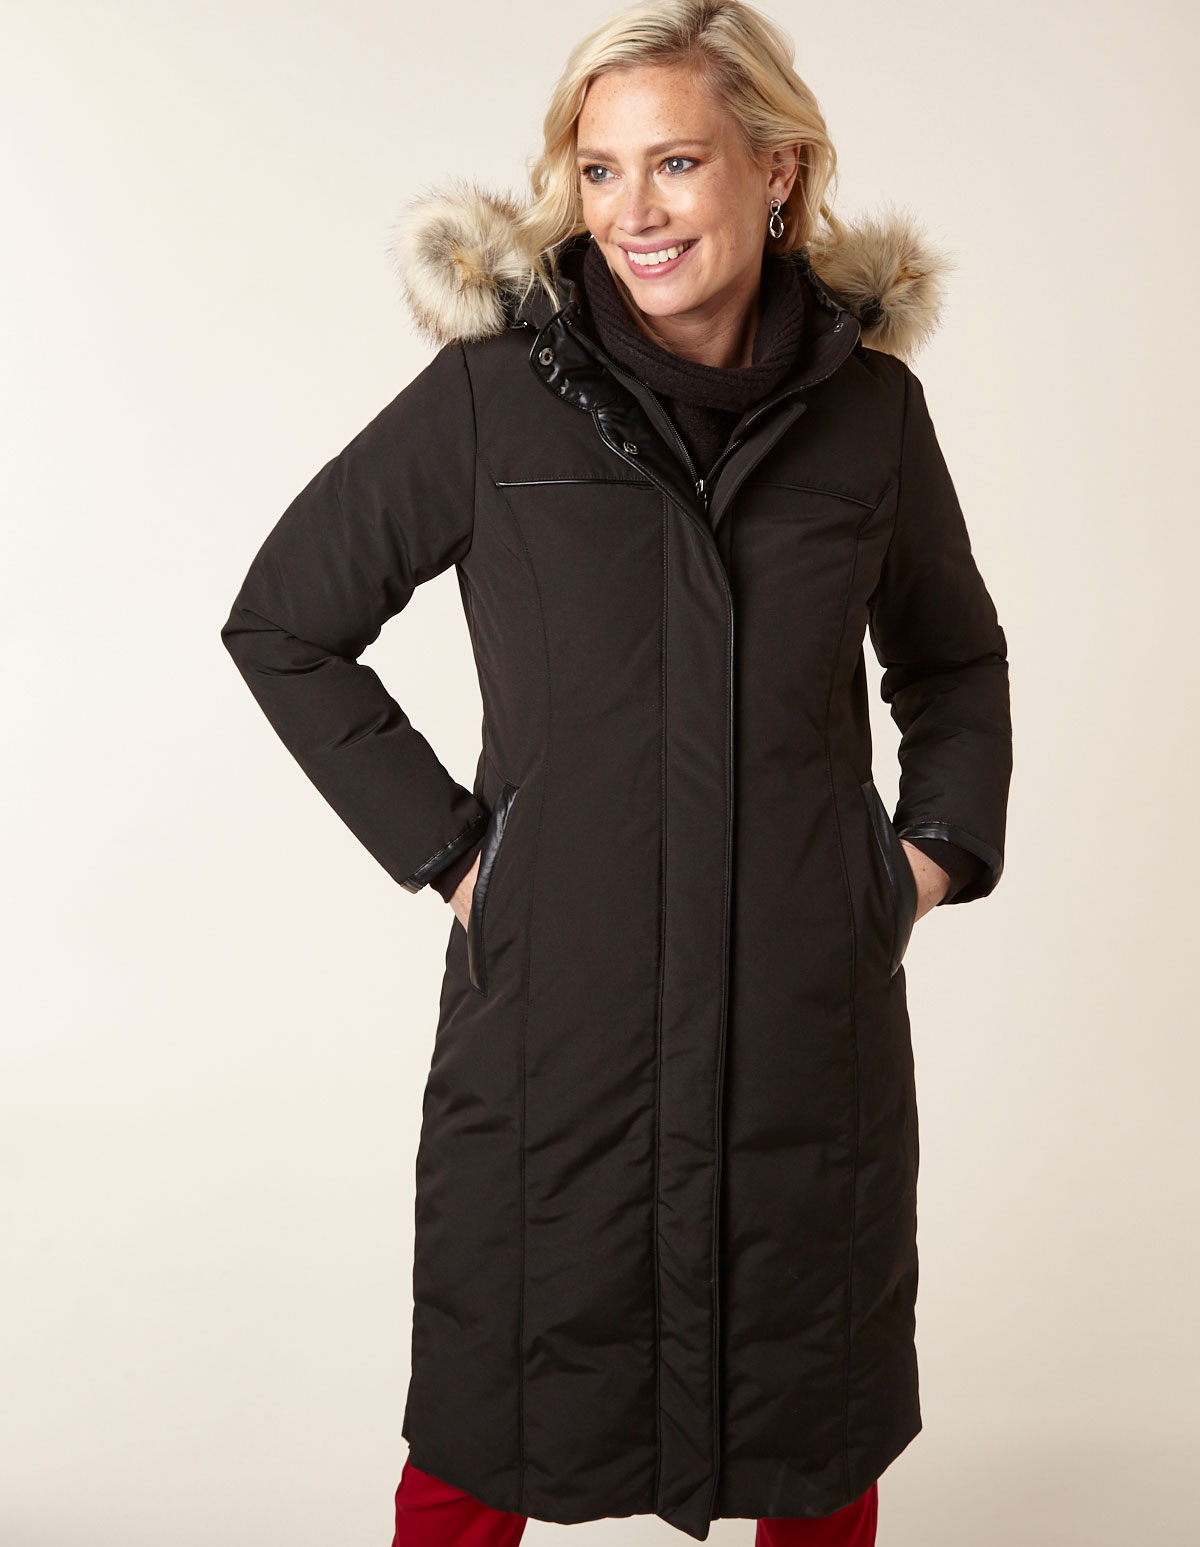 Black Long Commuter Down Coat, Black, hi-res